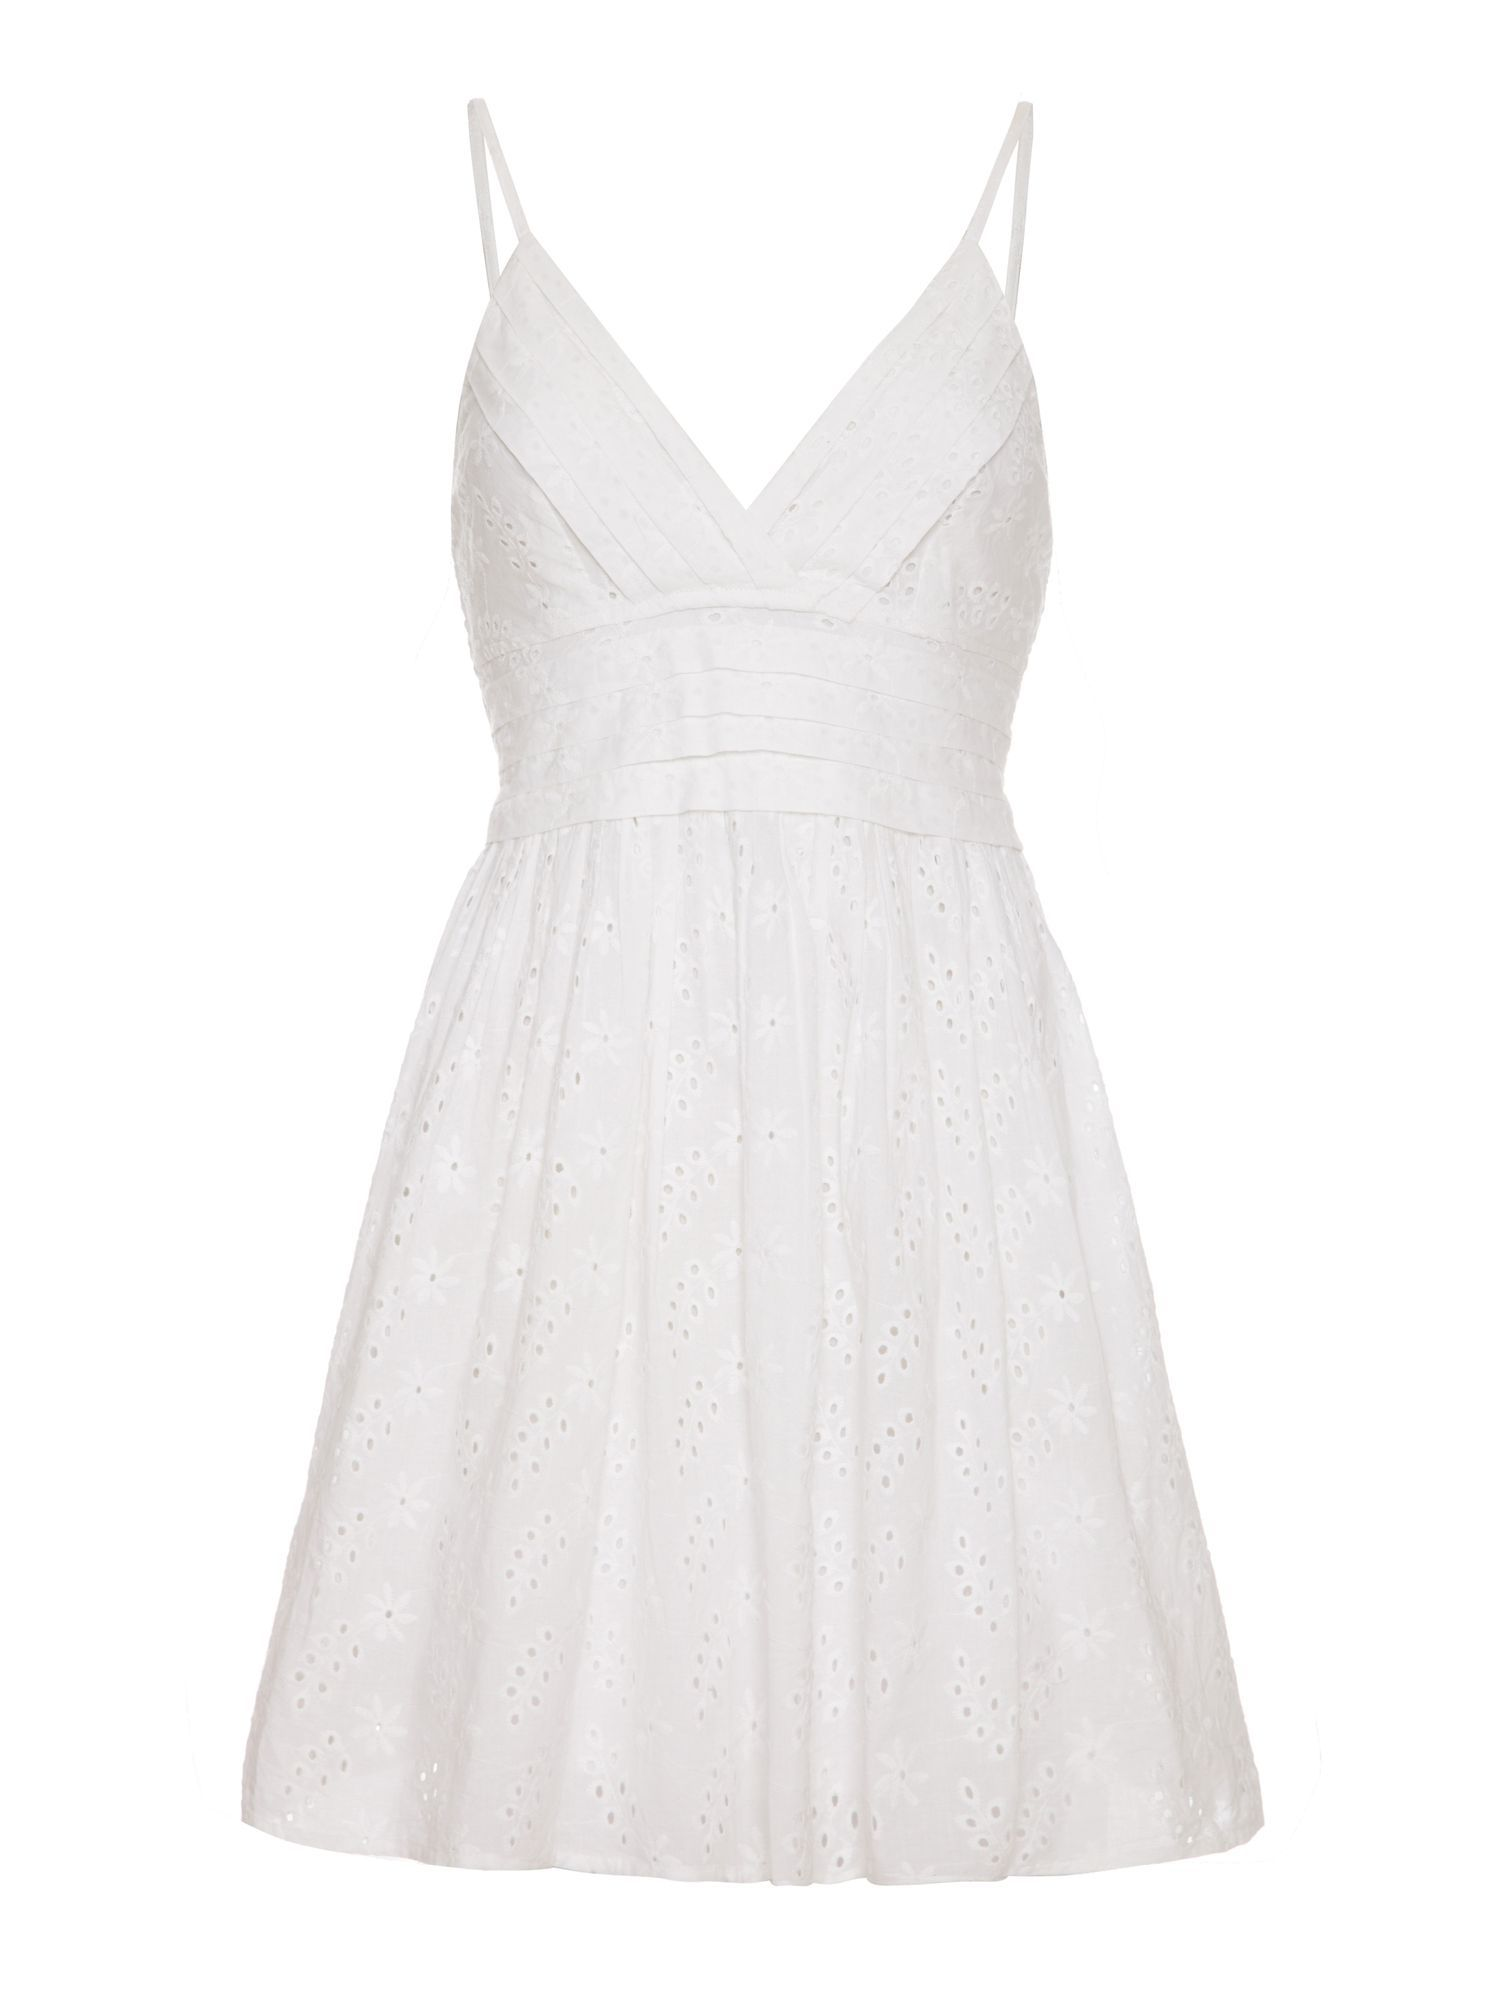 Embroidery Anglaise Summer Dress